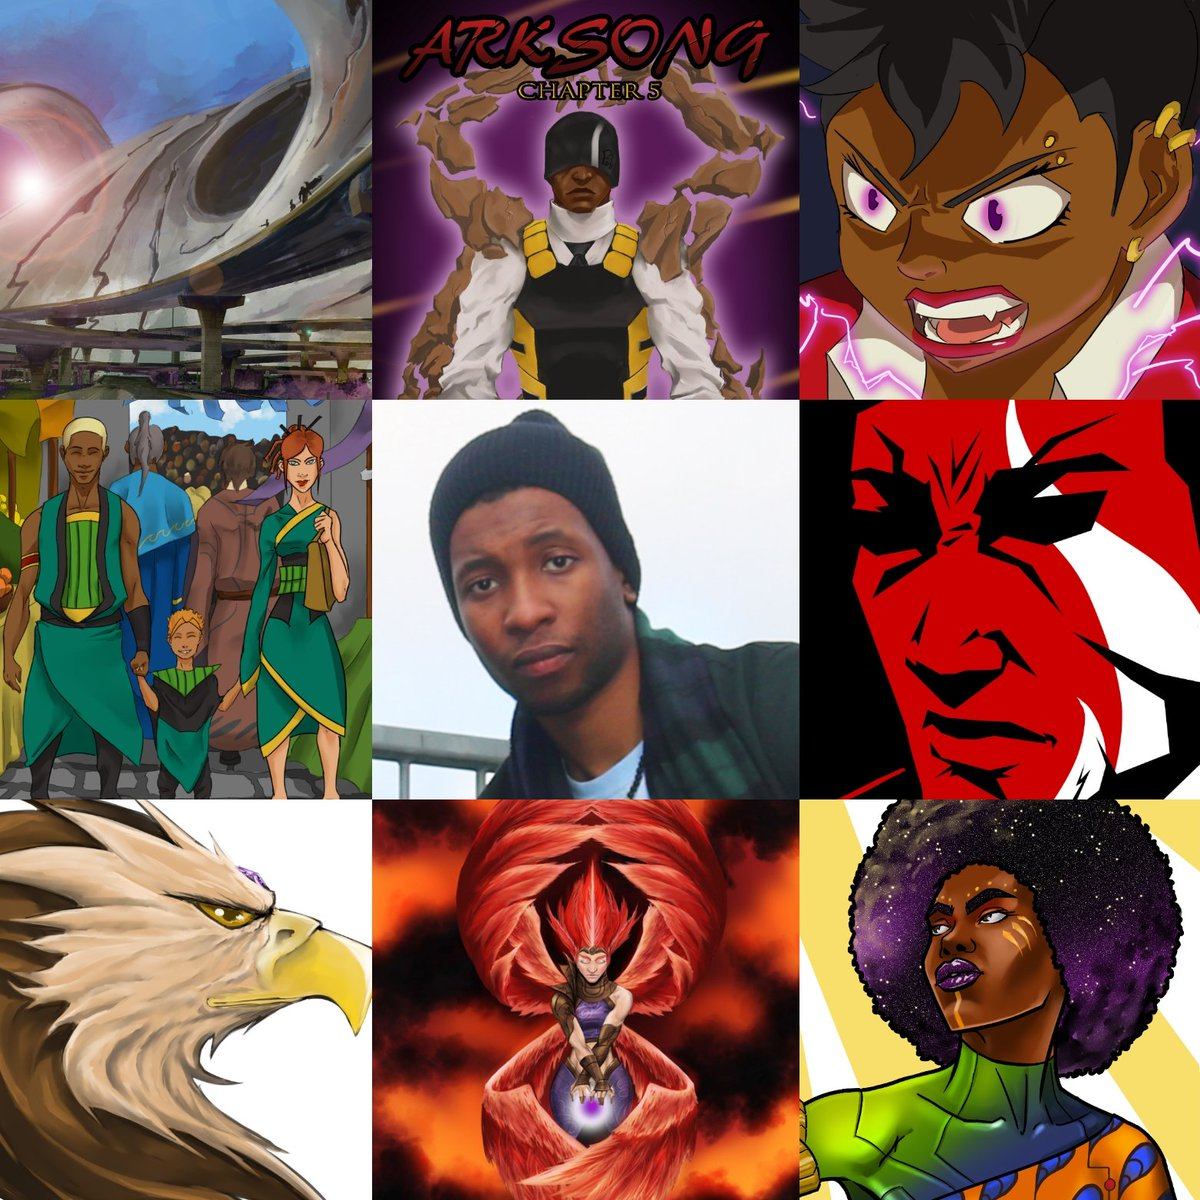 Thought I'd join in with the #artvsartist thing. I've only put in work from 2018 to keep it all up to date. But to be honest some of these are my favourites anyway!  #artvsartist2019 #digitalart #illustrator #blackartist #characterdesign #conceptart #comicart #indiecomics